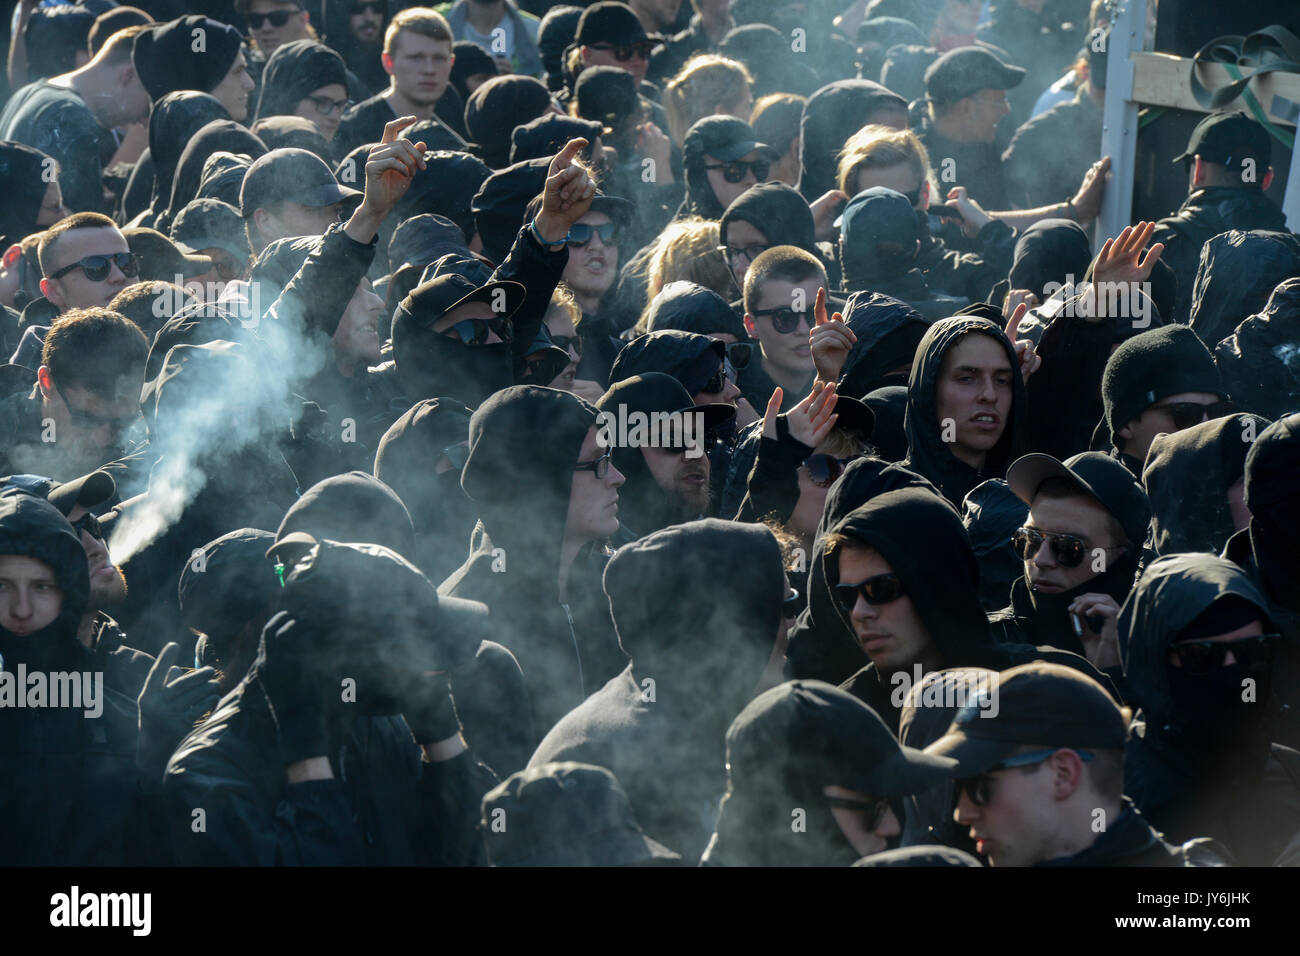 GERMANY, Hamburg, protest rally 'G-20 WELCOME TO HELL' against G-20 summit in july 2017, black mummed protester smoking Marihuana - Stock Image